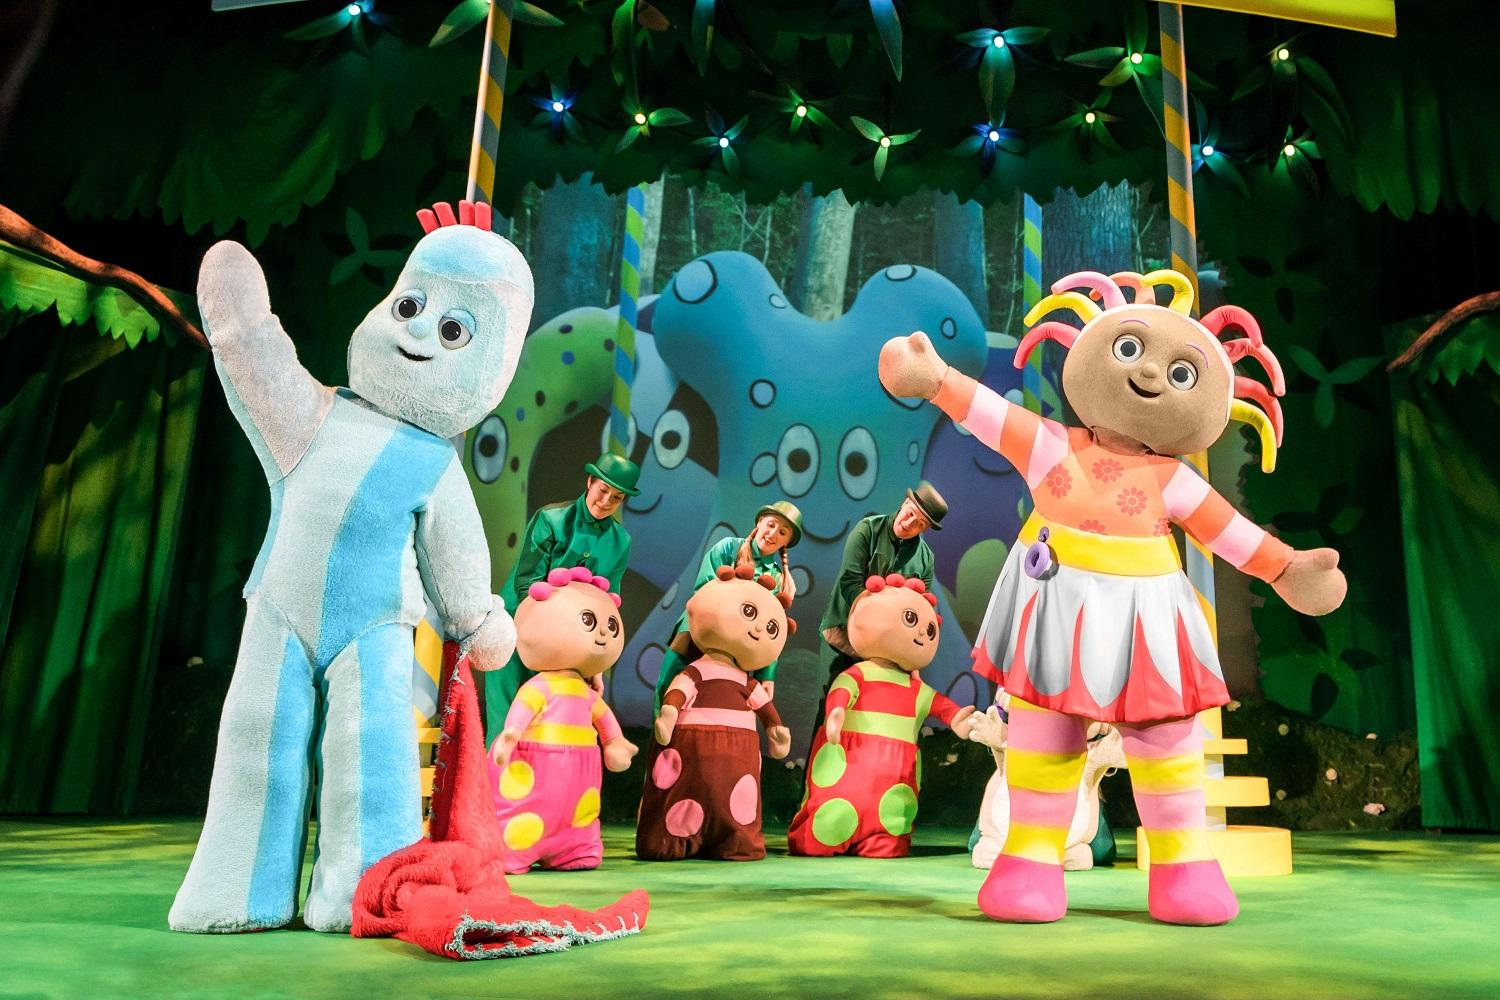 Image of Iggle Piggle, Upsy Daisy and the Tombliboos dancing